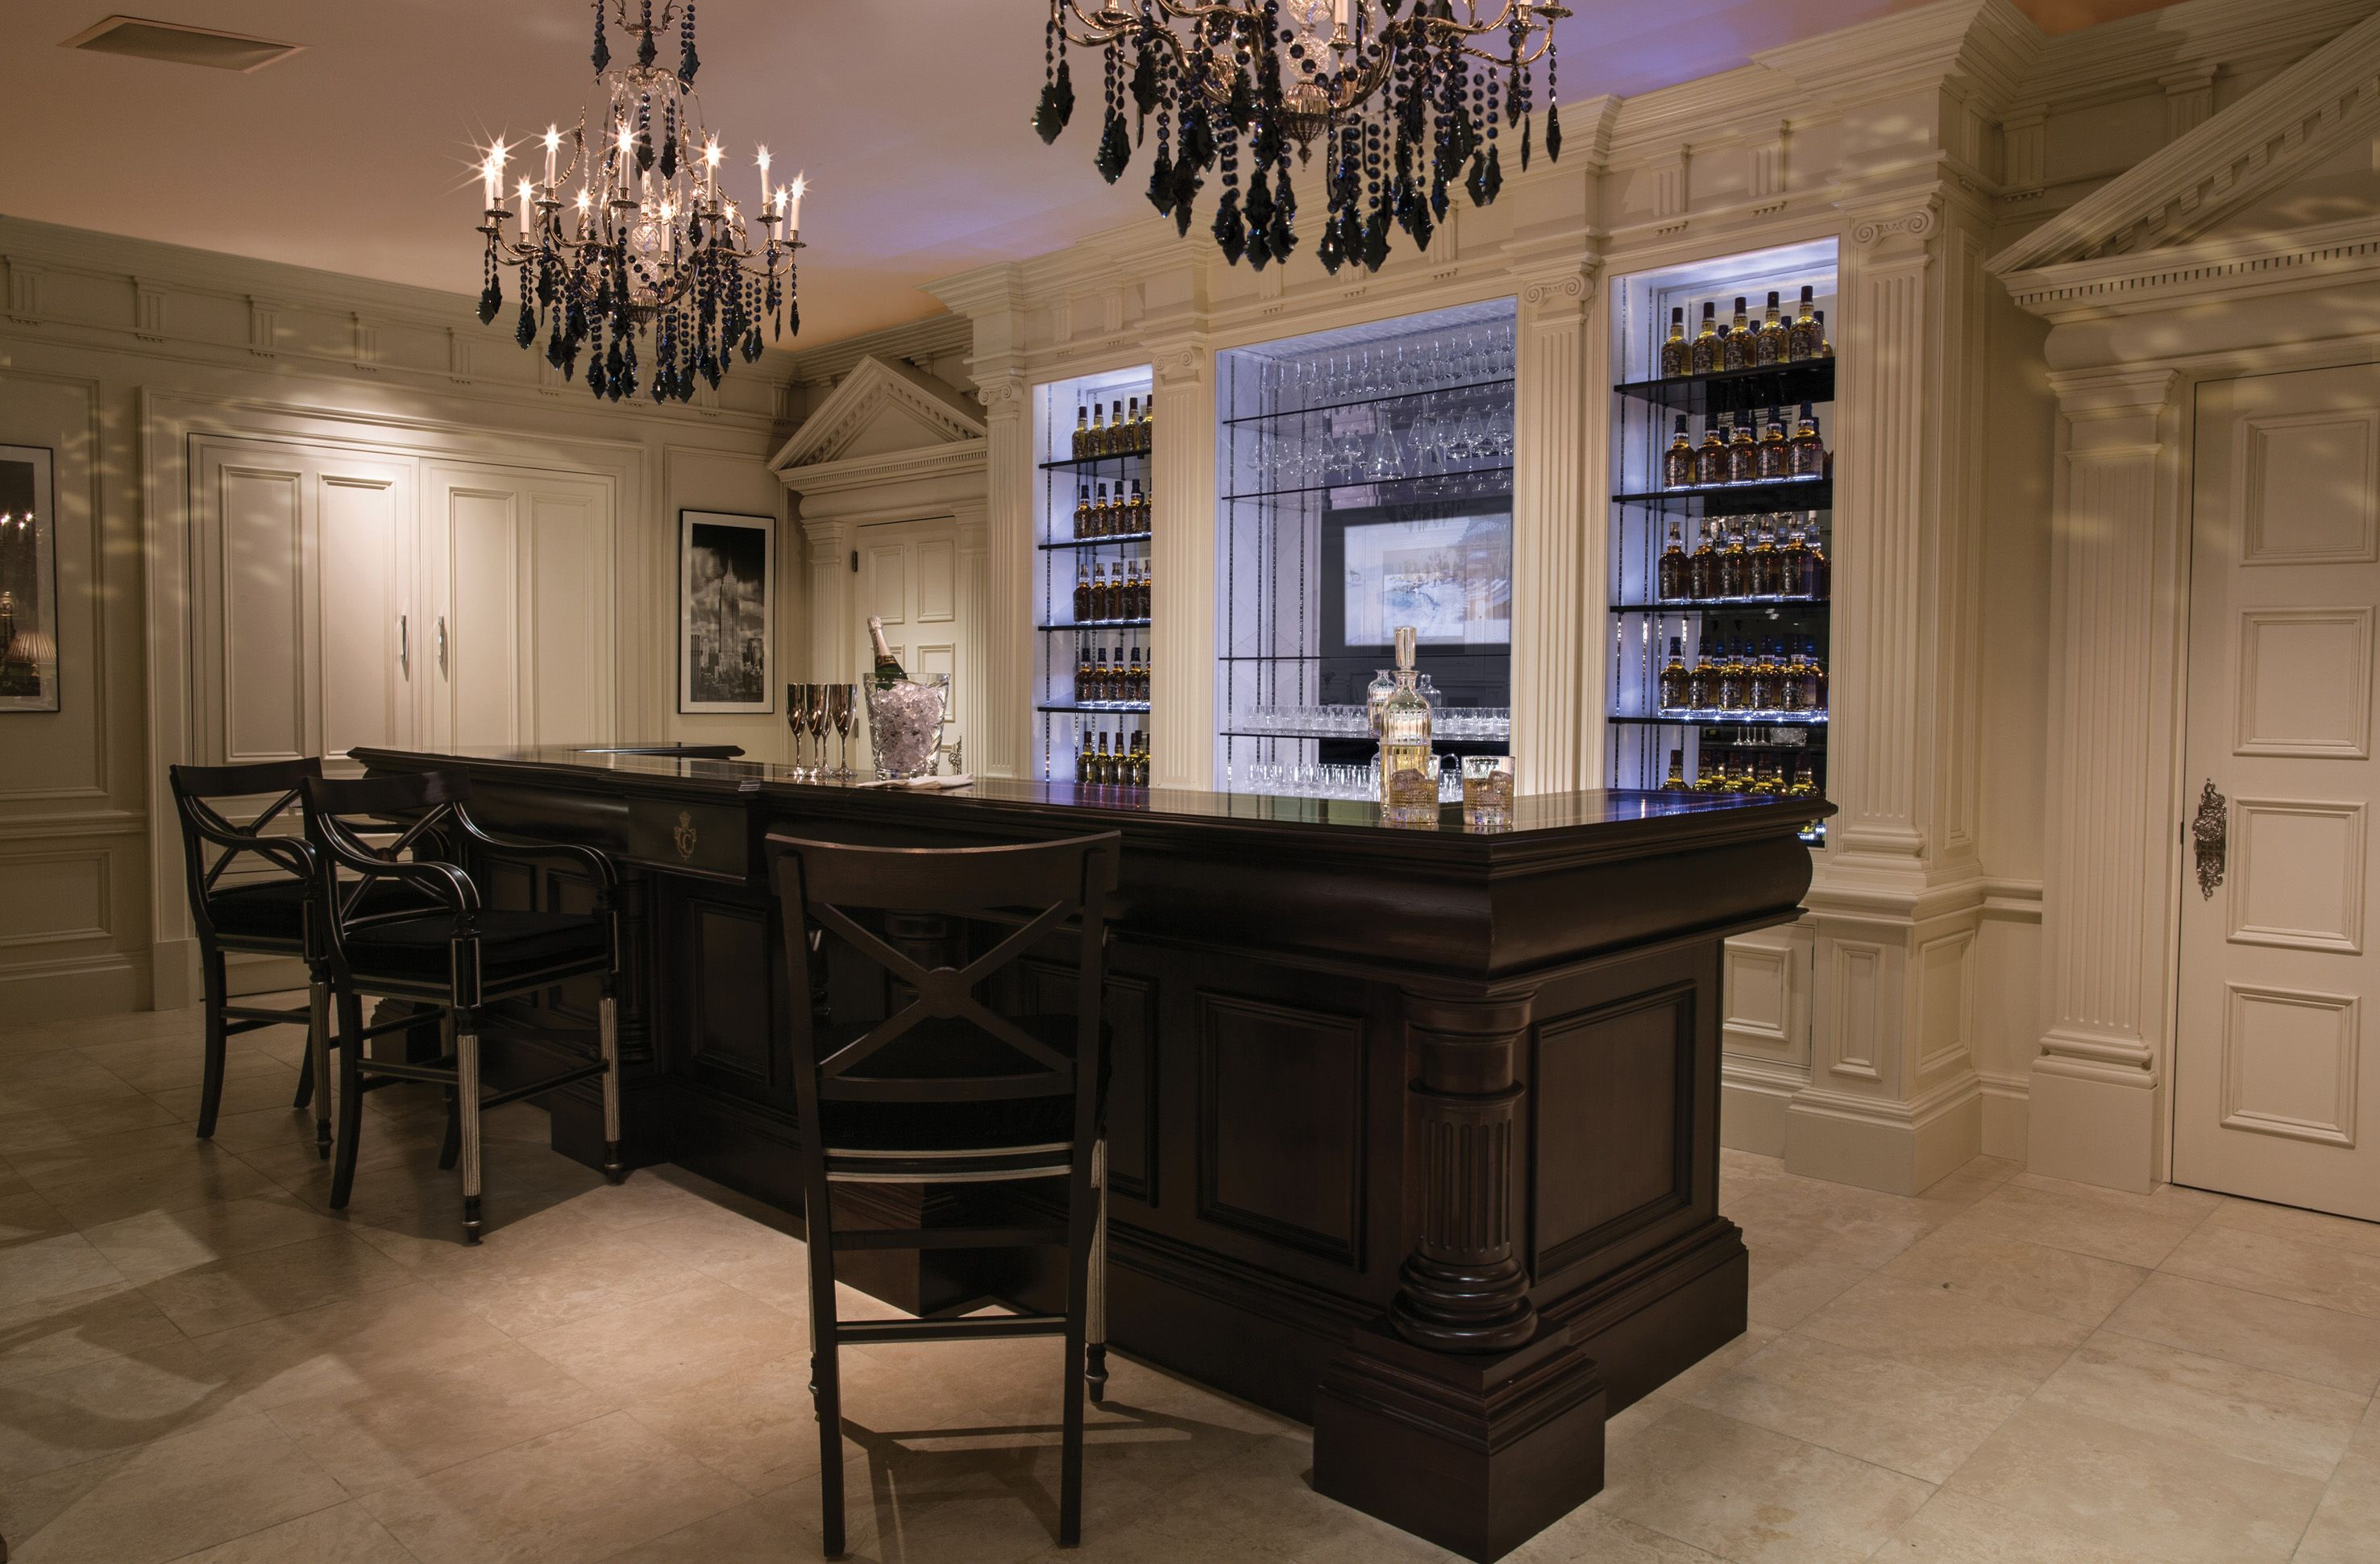 Luxury kitchens by clive christian interior design inspiration eva - Clive Christian Google Search